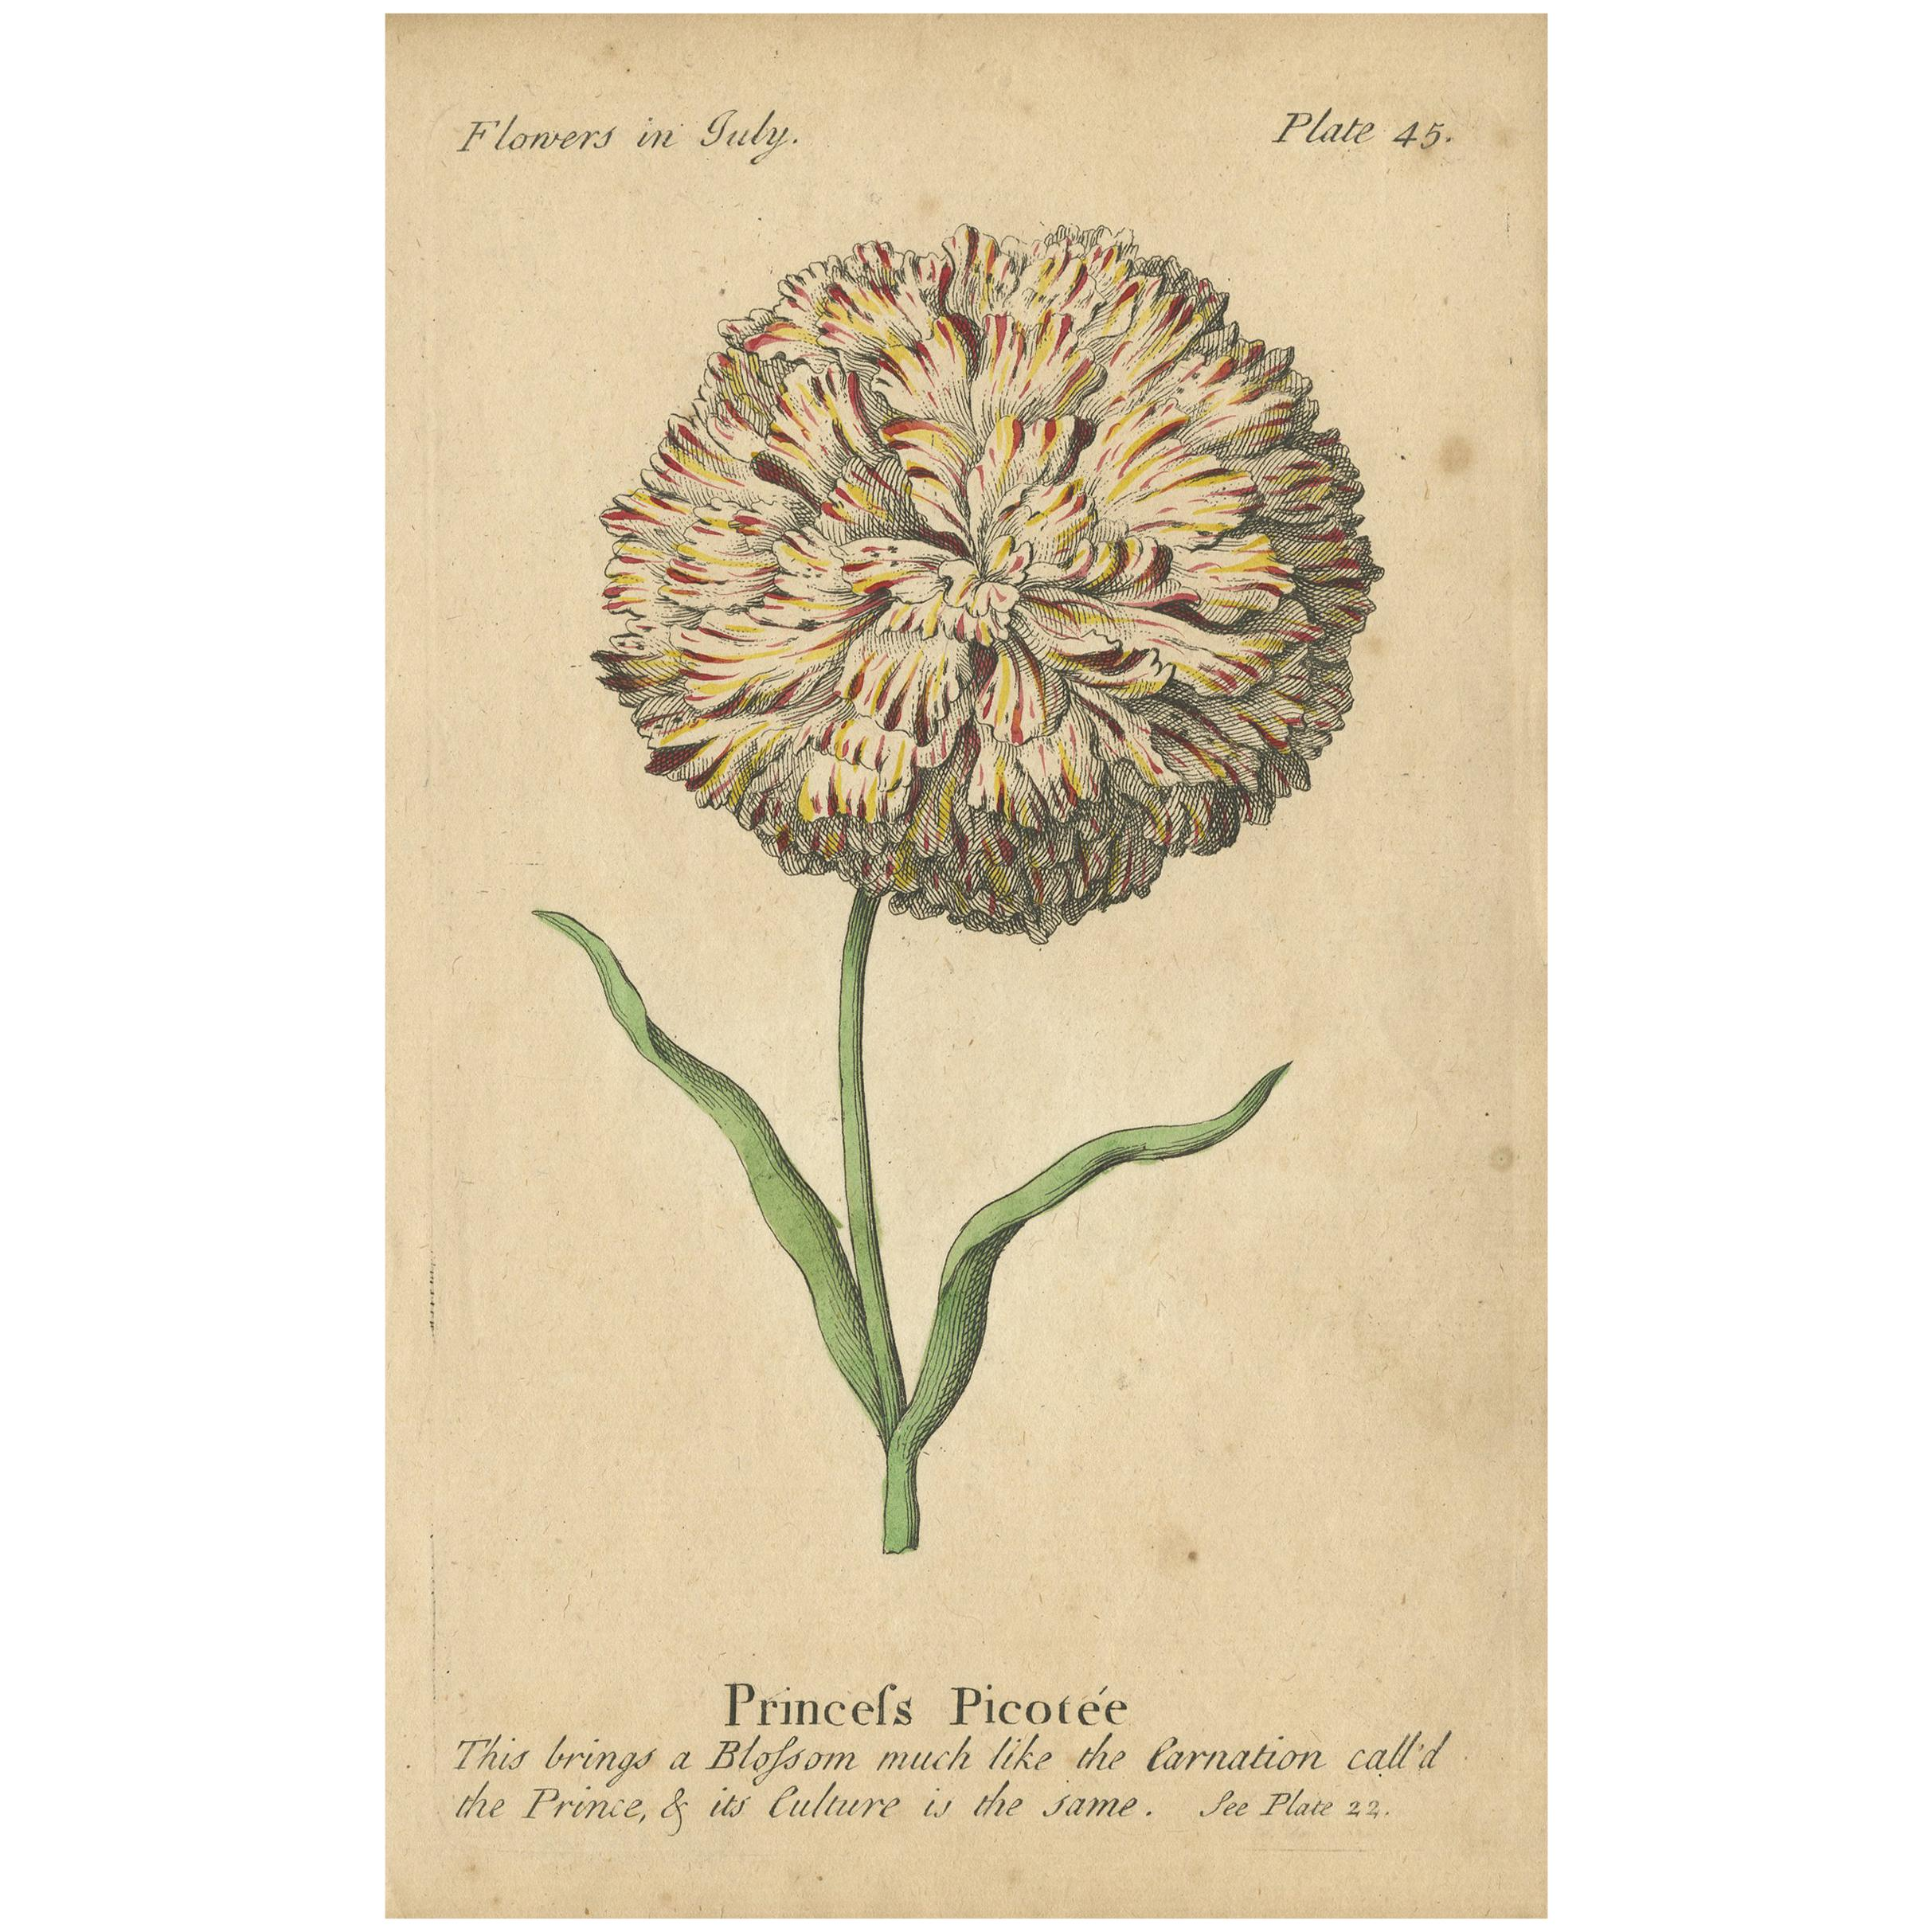 Antique Print of Picotee Princess and the Painted Lady Carnation Flower, 1747